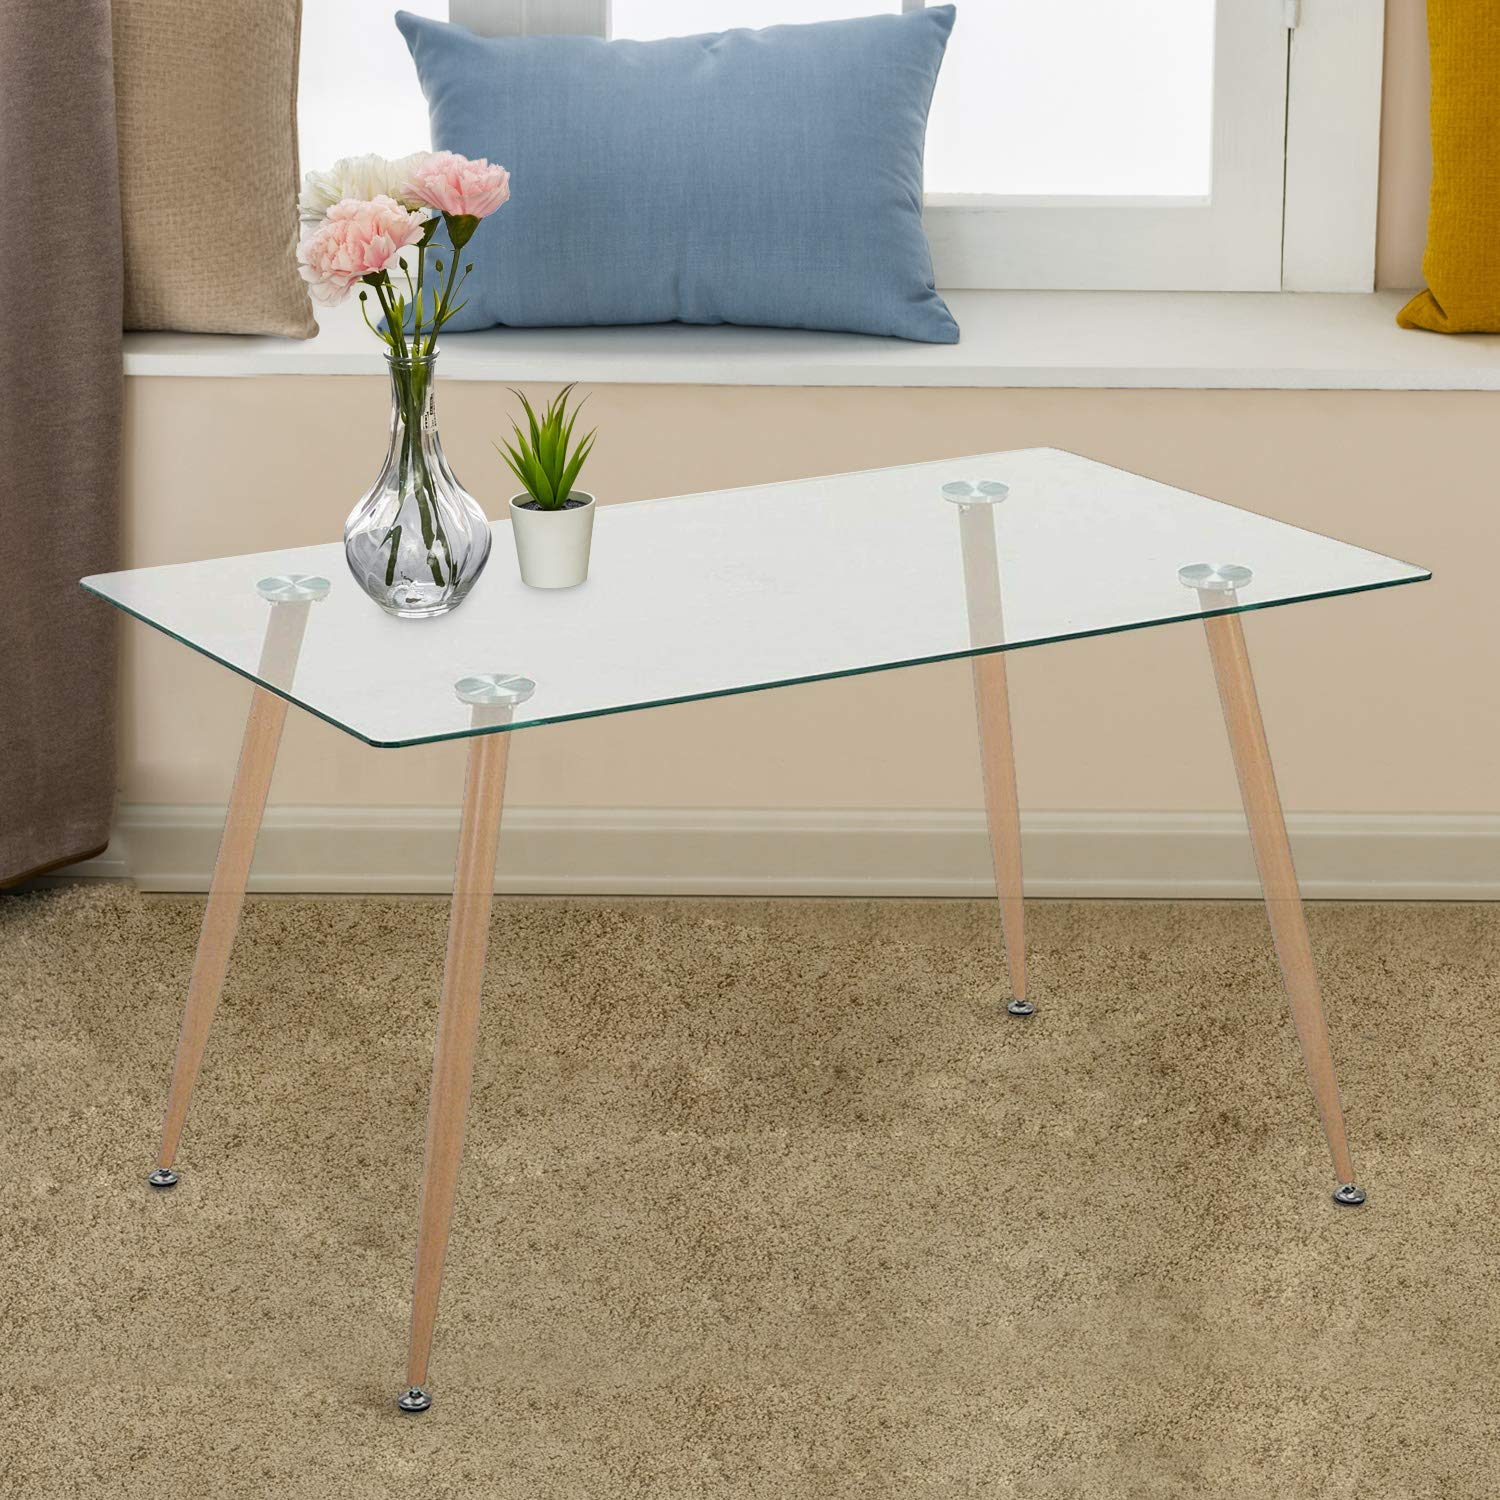 Mecor Dining Table Glass Top and Wooden Look Leg Modern Kitchen Table Rectangular by Mecor (Image #3)